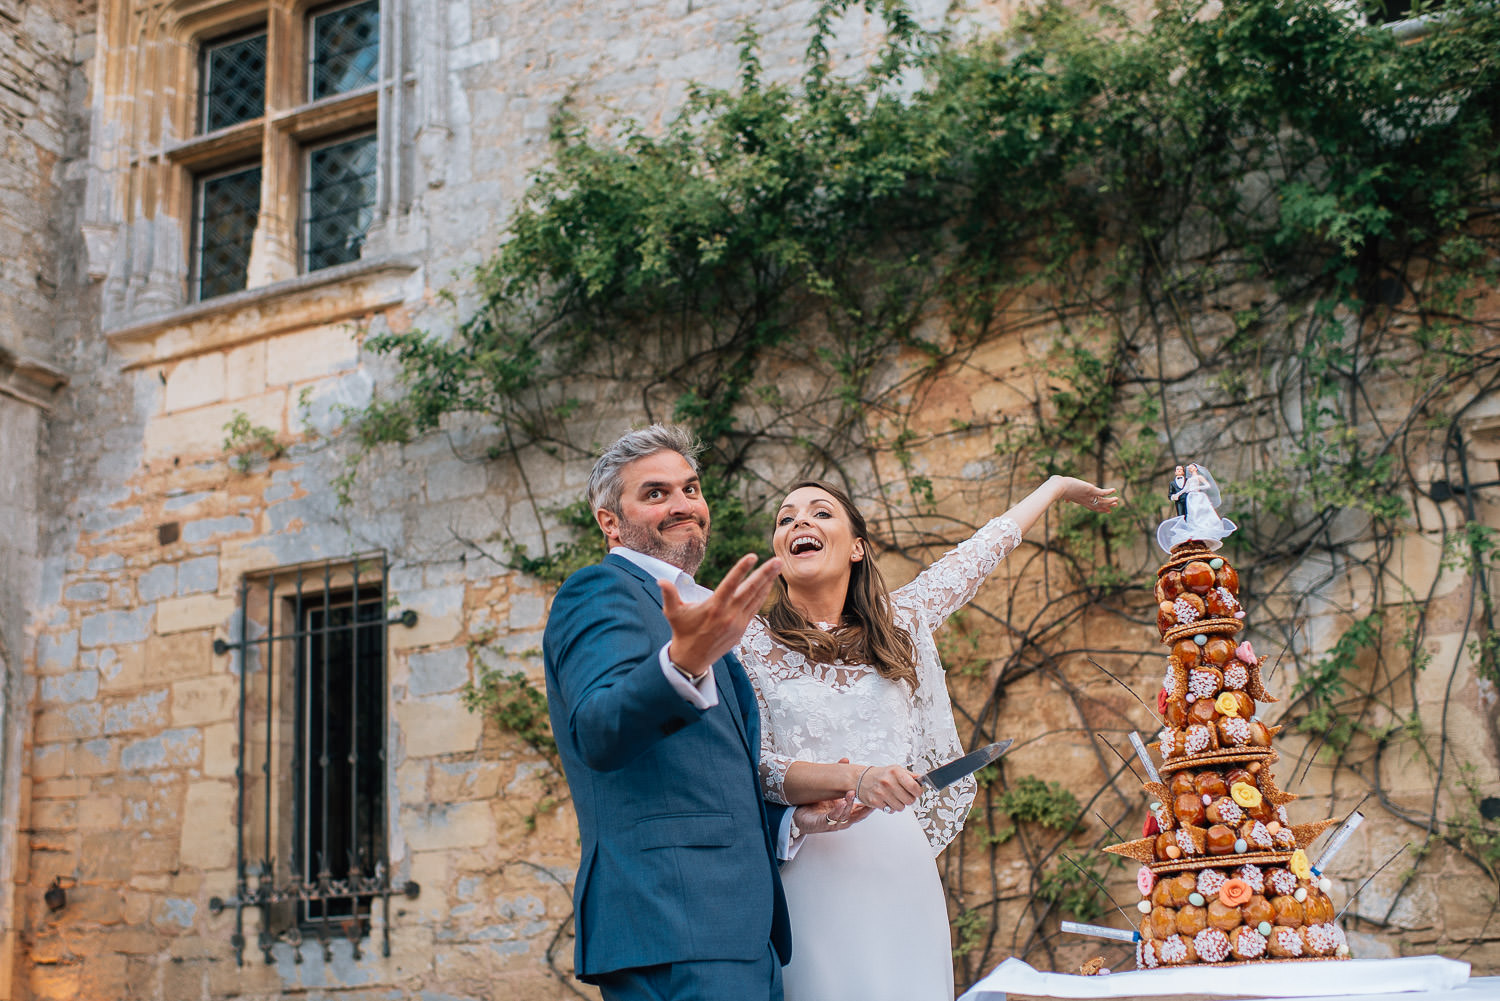 Wedding cake in chateau de la bourlie wedding by french destination wedding photographer the shannons photography